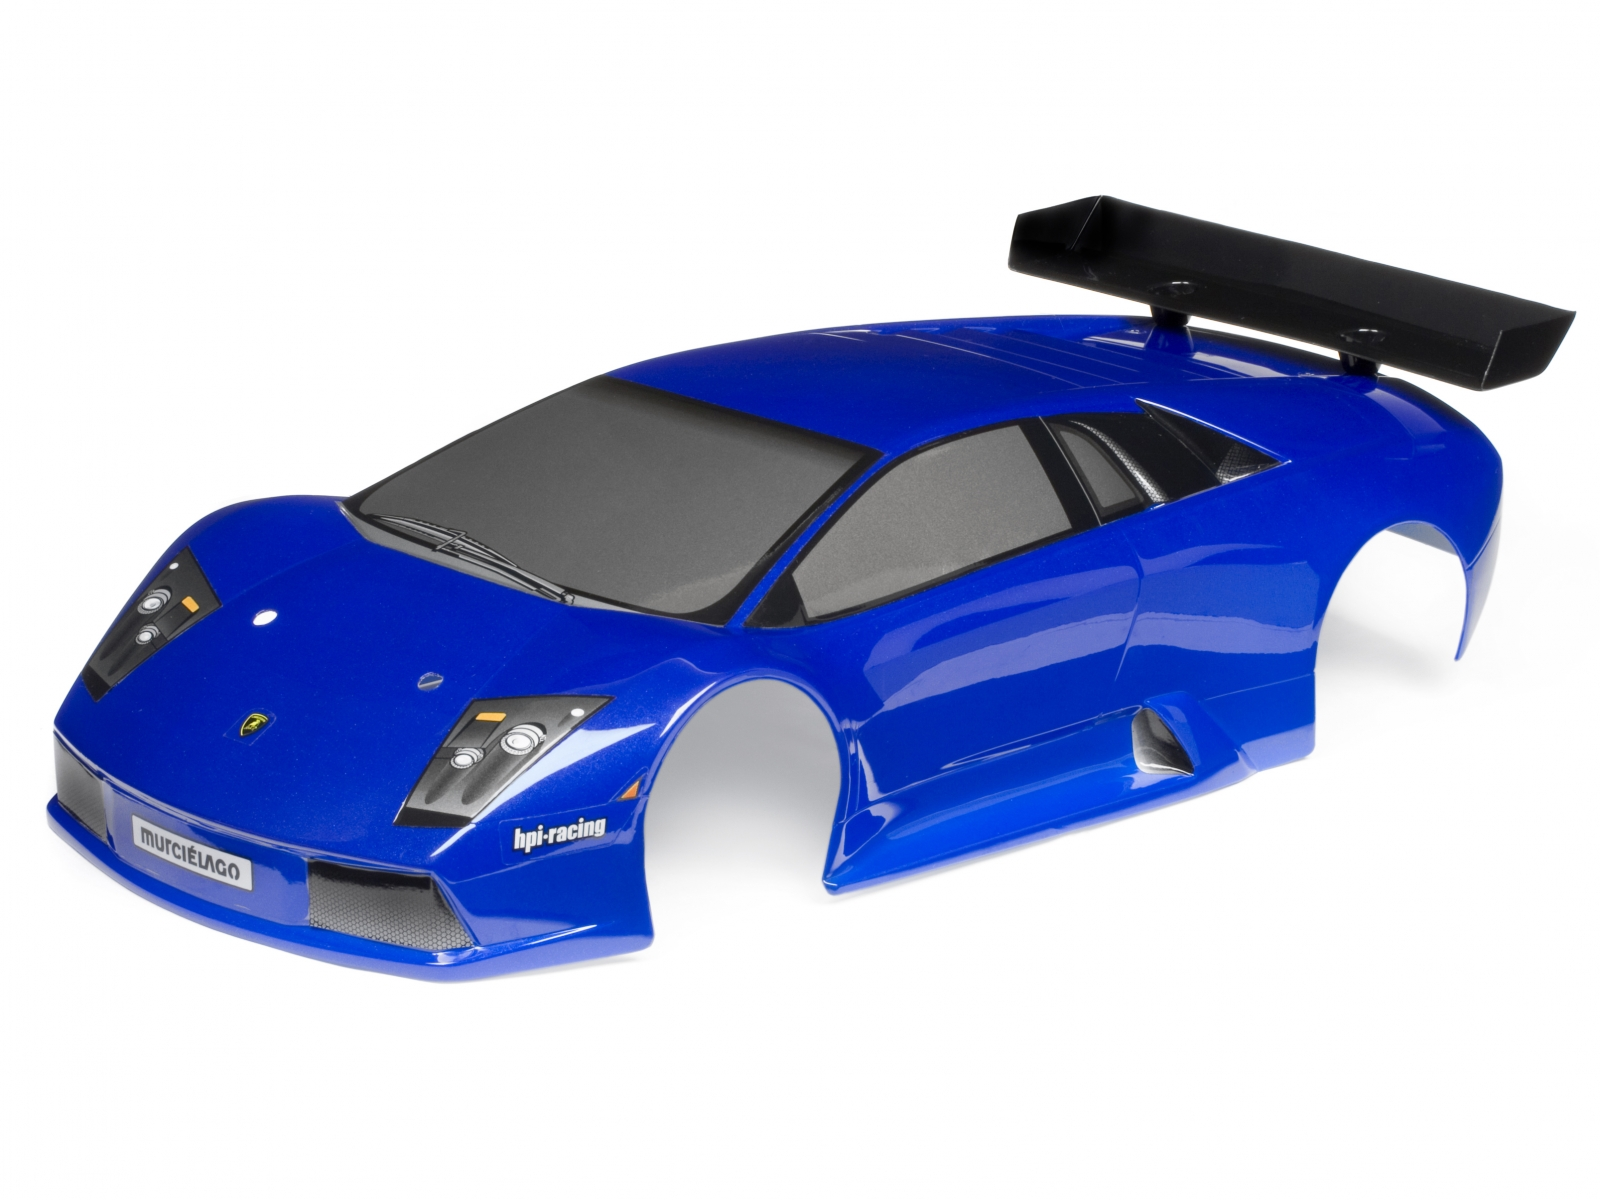 The Lamborghini Murcielago is